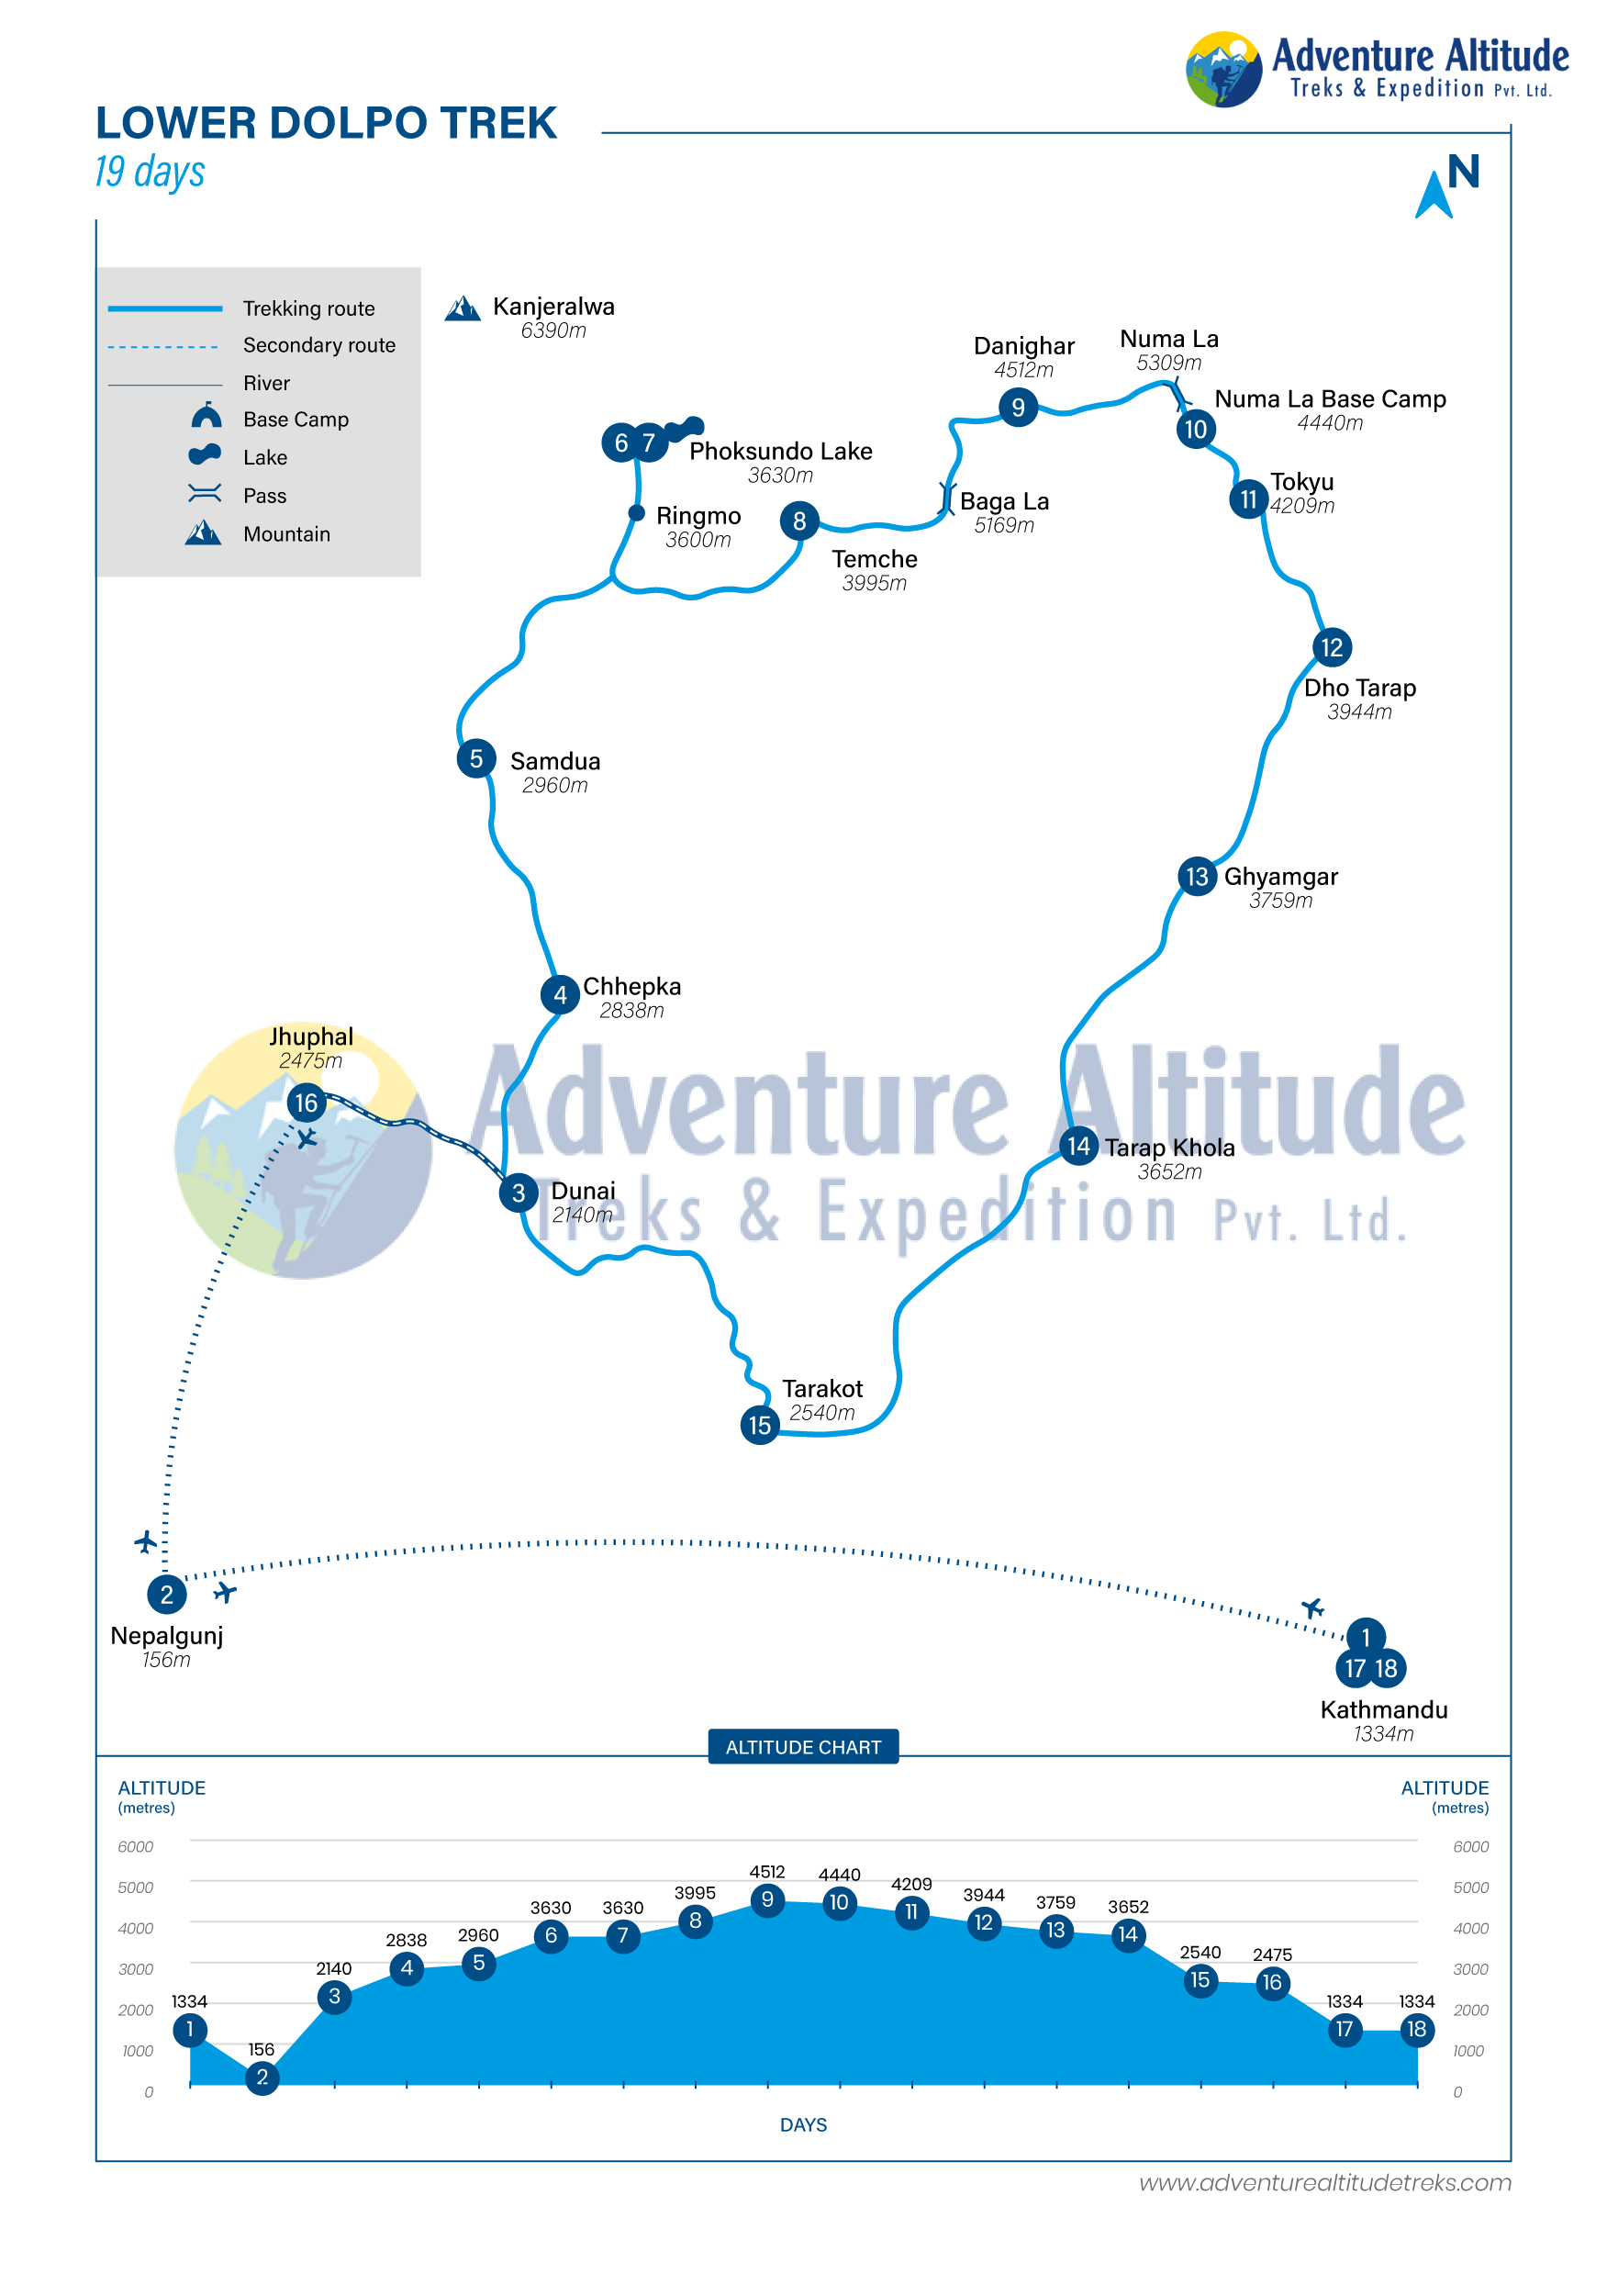 Route Map for Lower Dolpo Trekking | Adventure Altitude